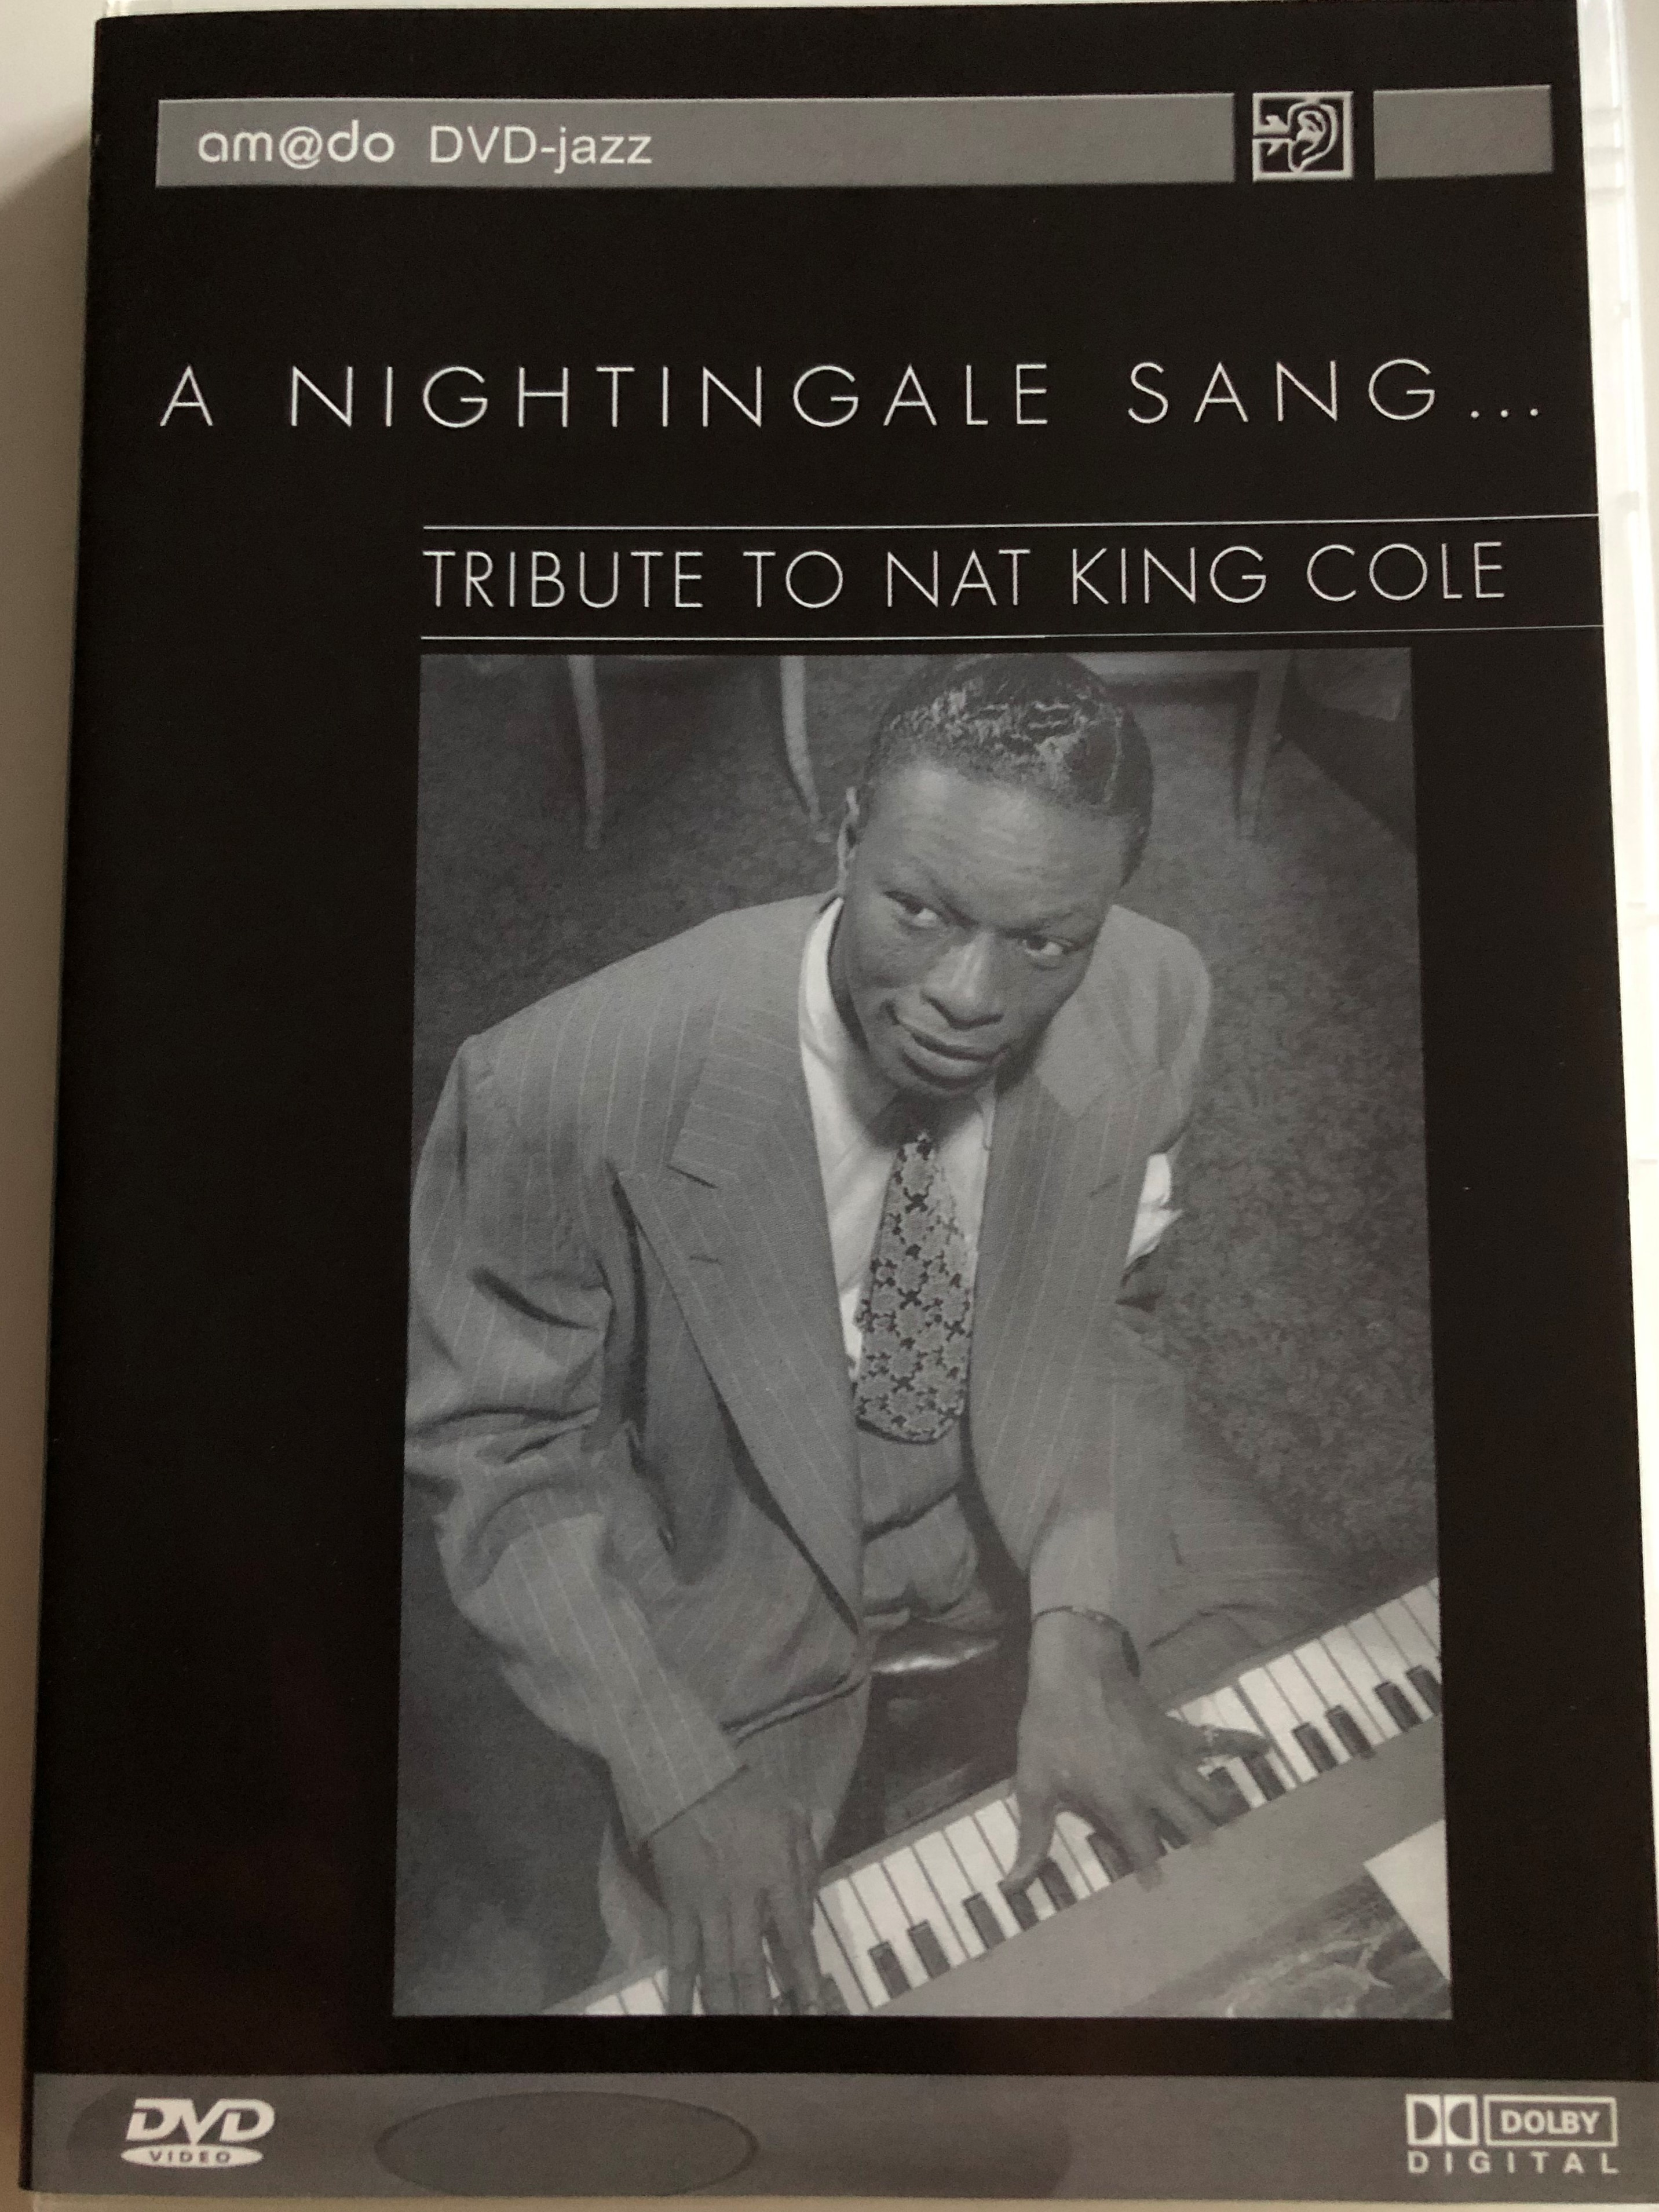 a-nightingale-sang...-dvd-2002-tribute-to-nat-king-cole-amado-dvd-jazz-danny-williams-valerie-masters-will-gaines-sol-raye-nina-simone-1-.jpg